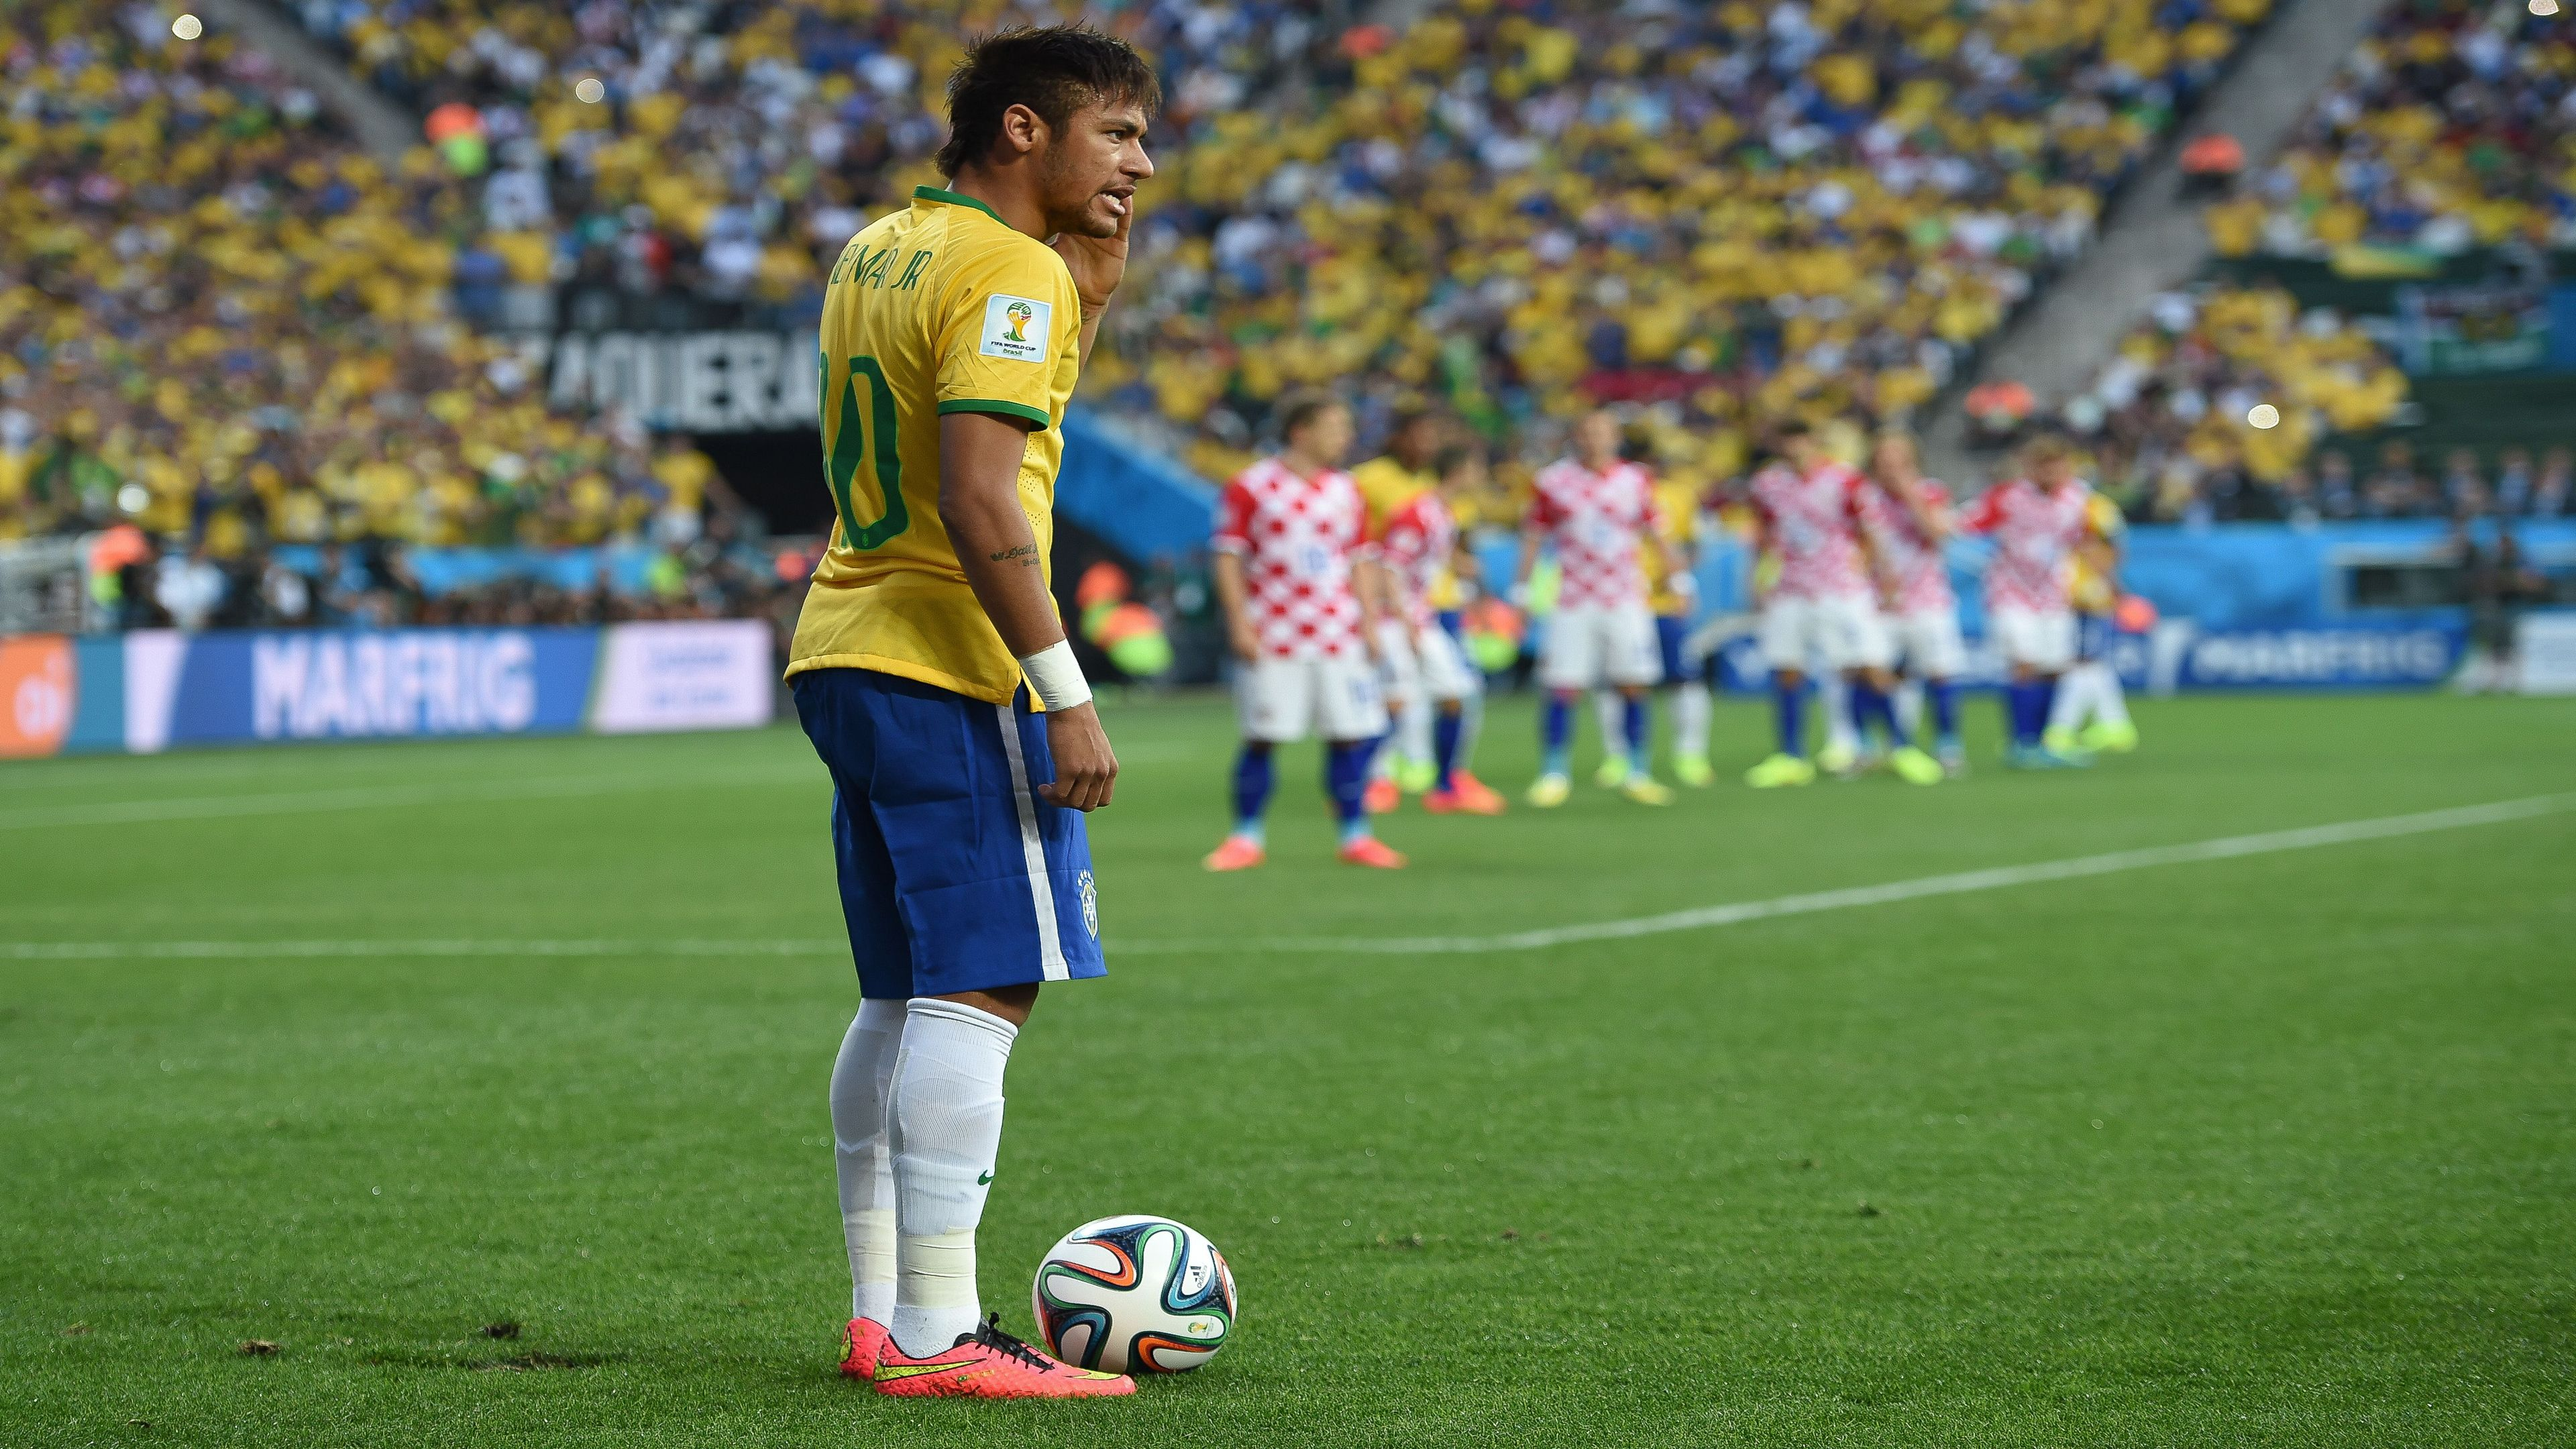 Neymar free kick Ultra HD 4K Wallpapers (With images